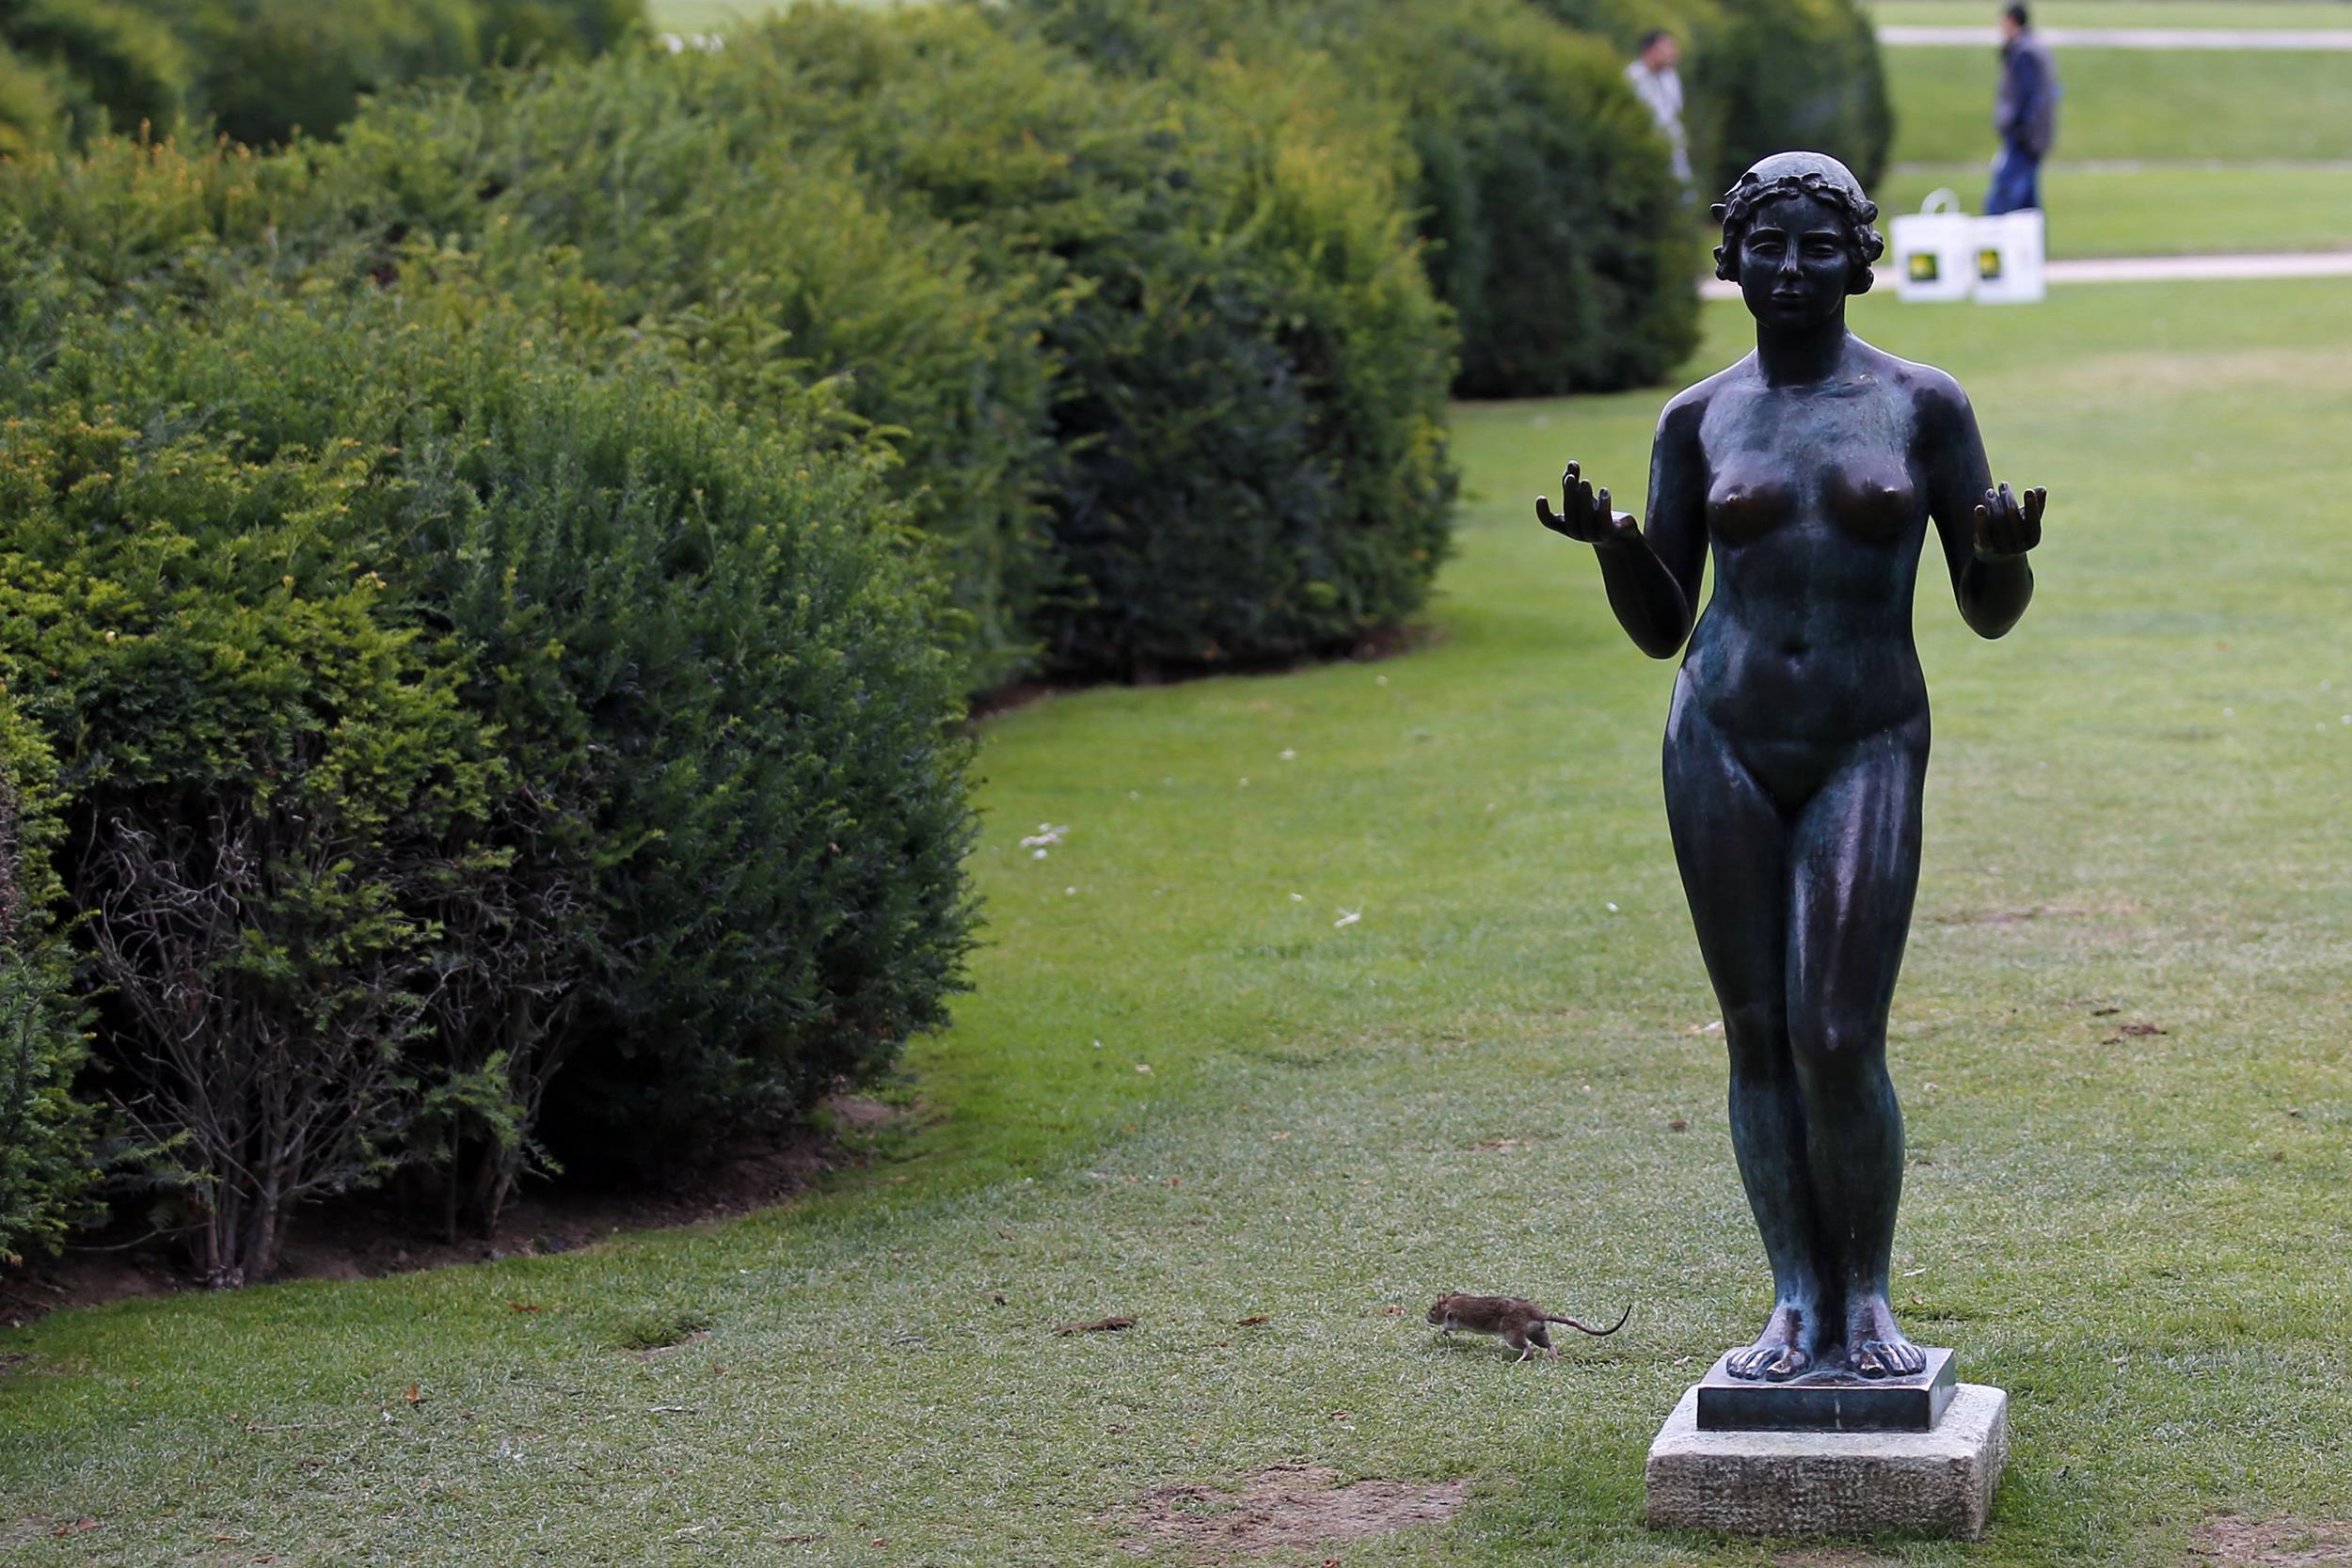 Image: A rat runs next to a Maillol Statue in The Tuileries gardens of the Louvre Muesum in Paris, France, on July 29